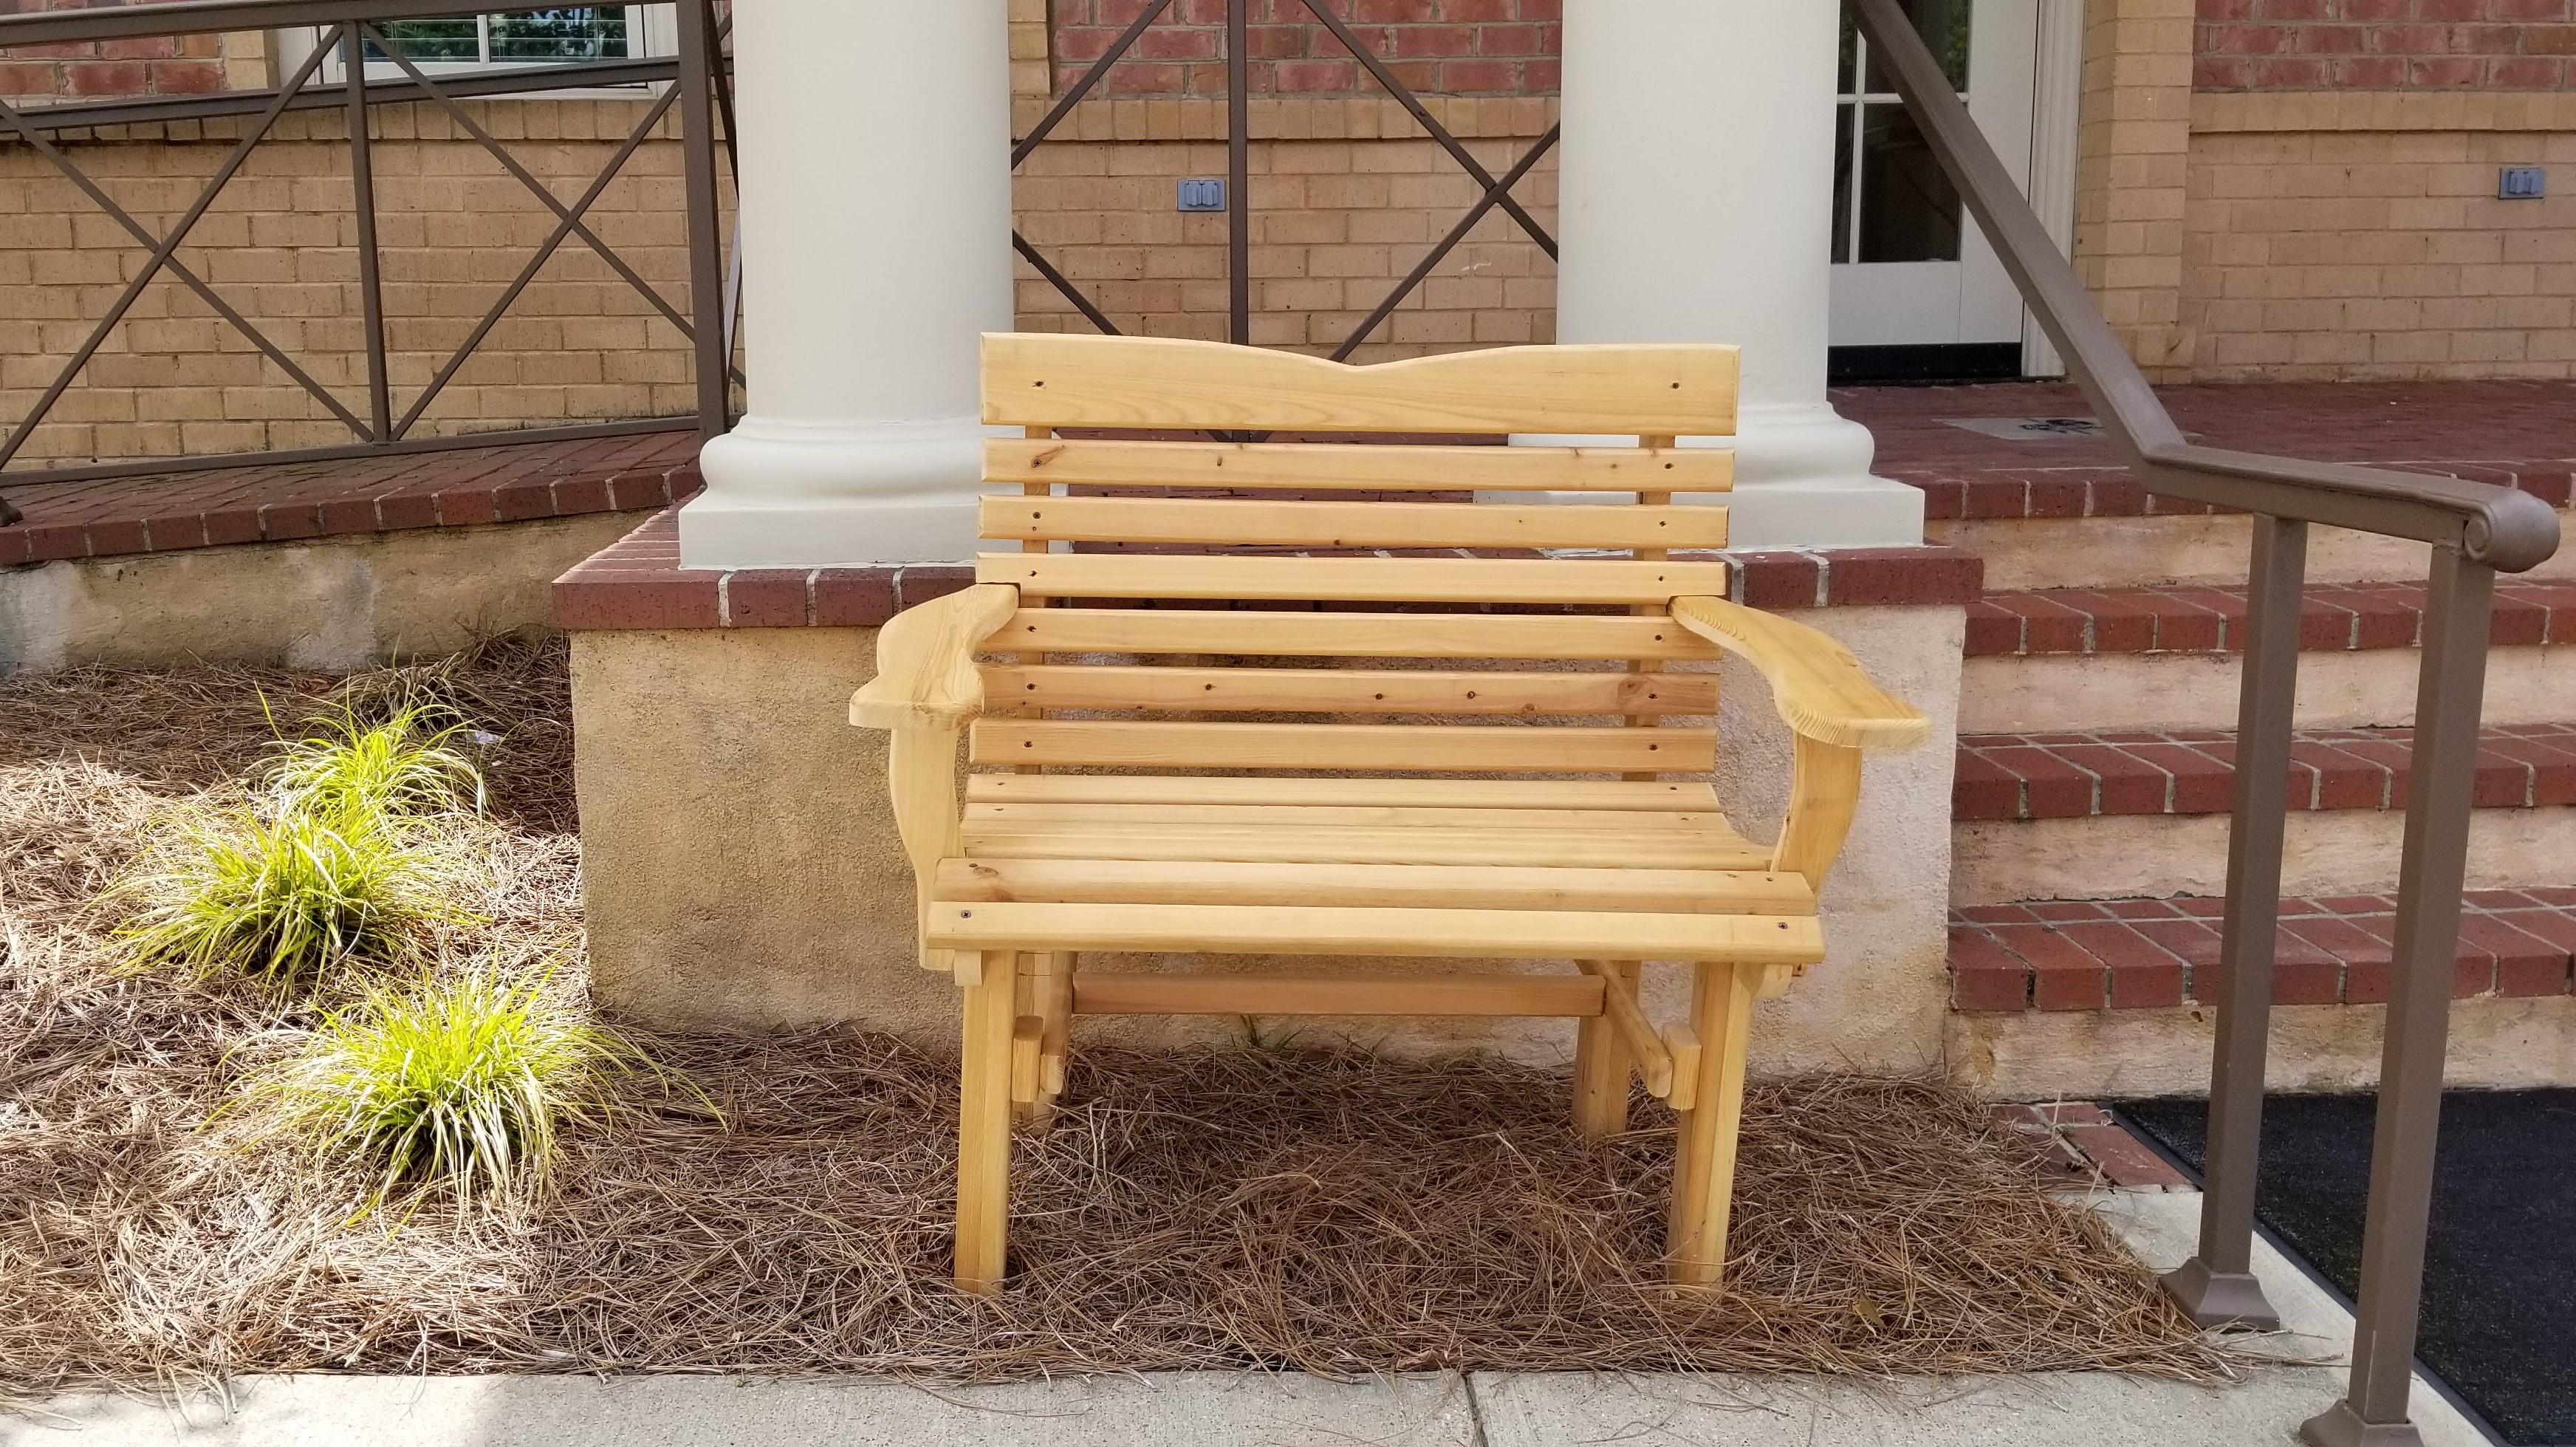 The Newman Family Donates Bench to MOSD